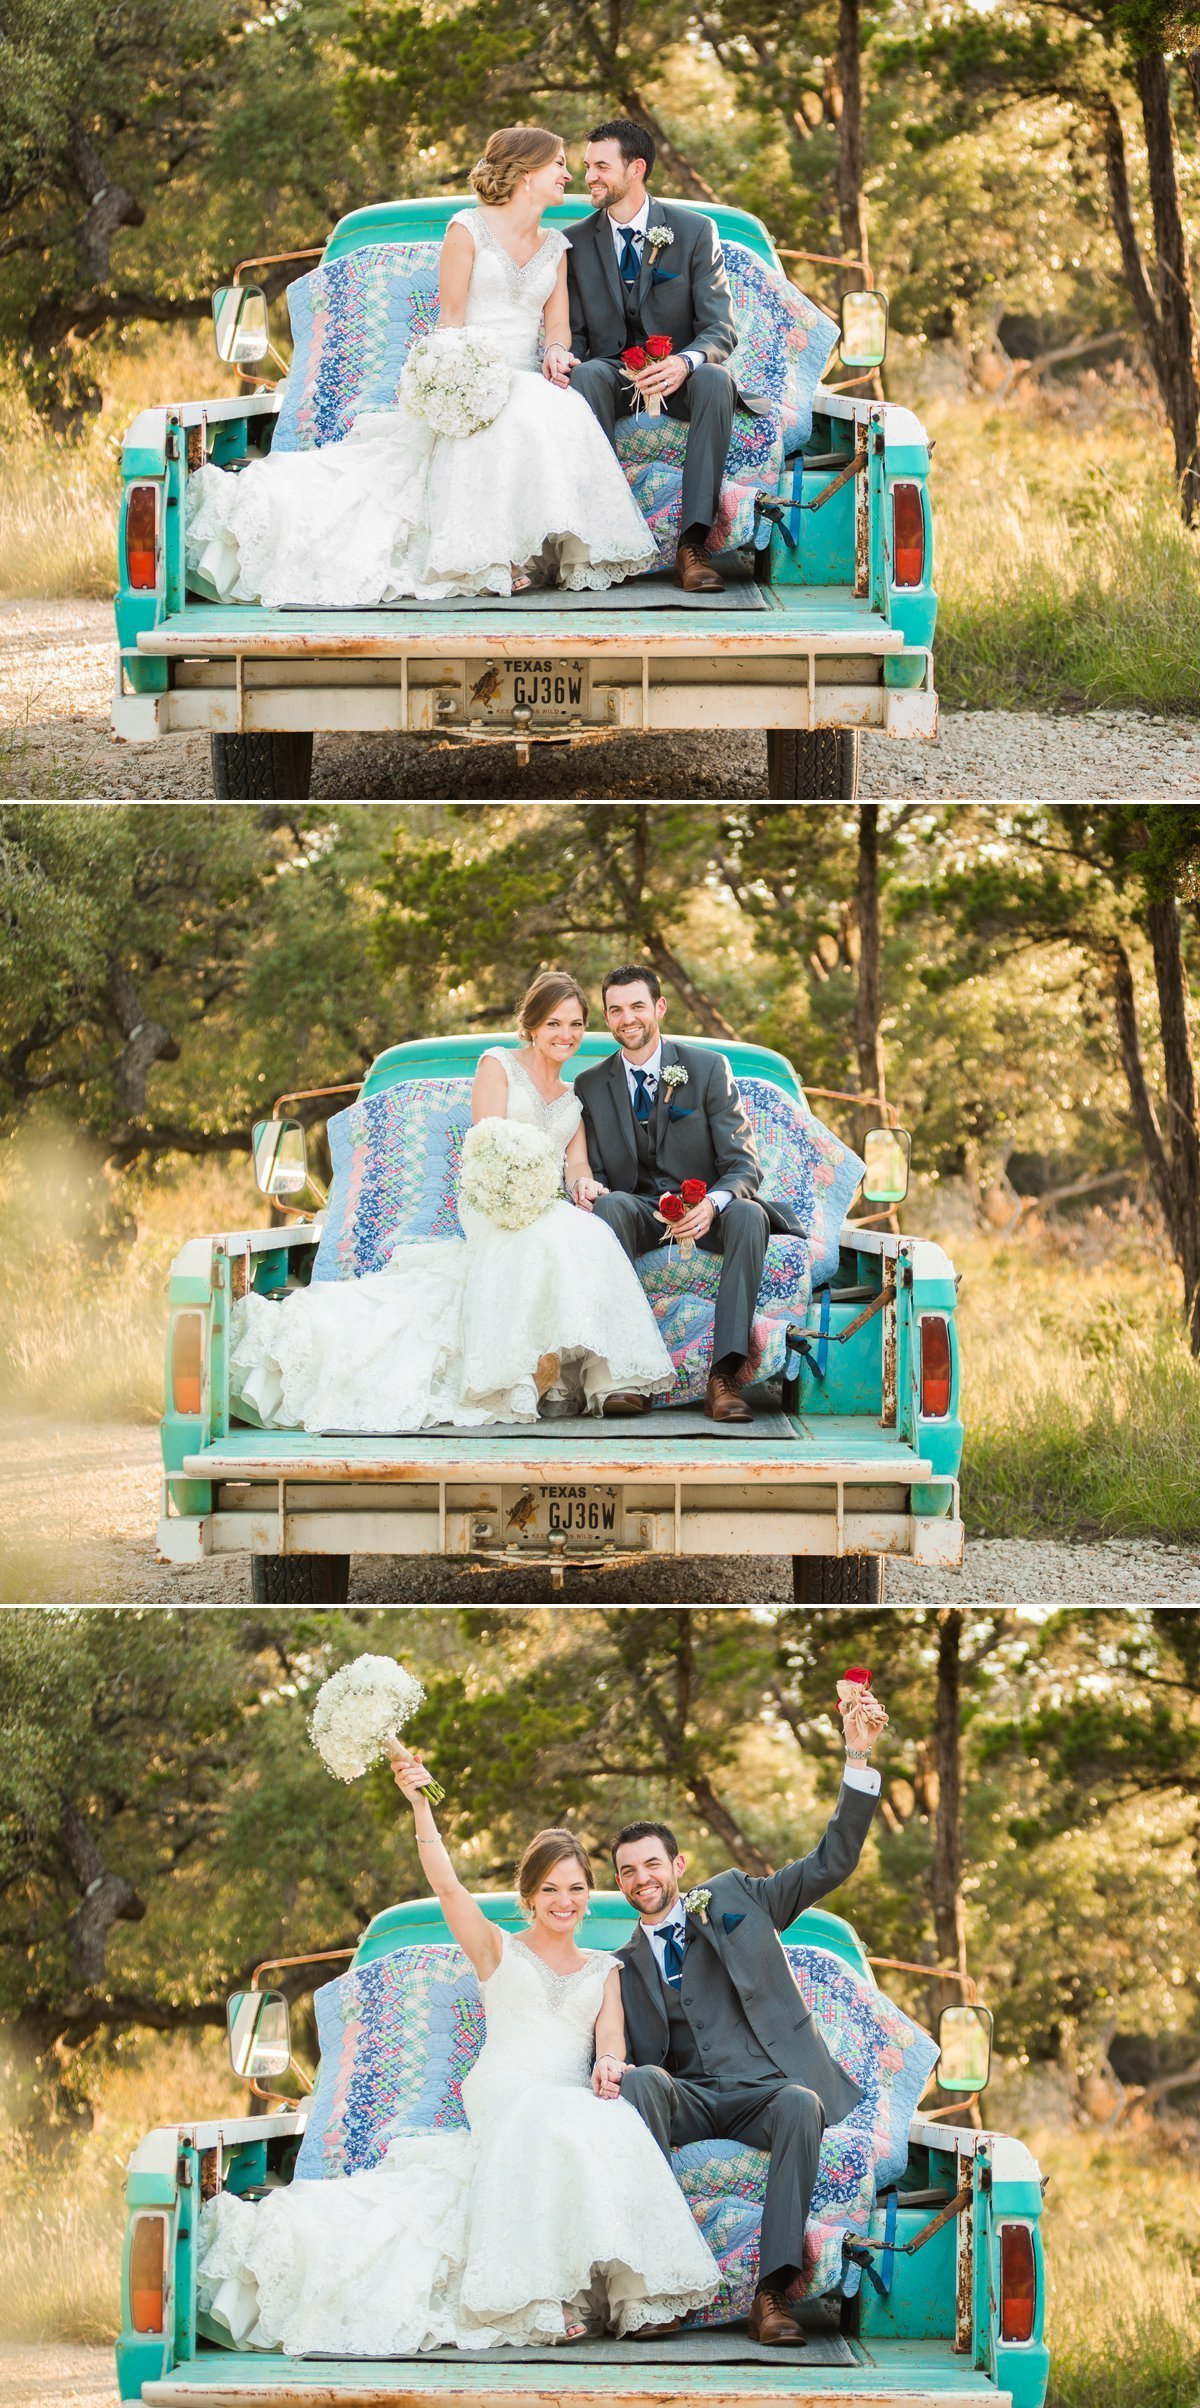 Montesino Ranch Wedding with vintage blue truck